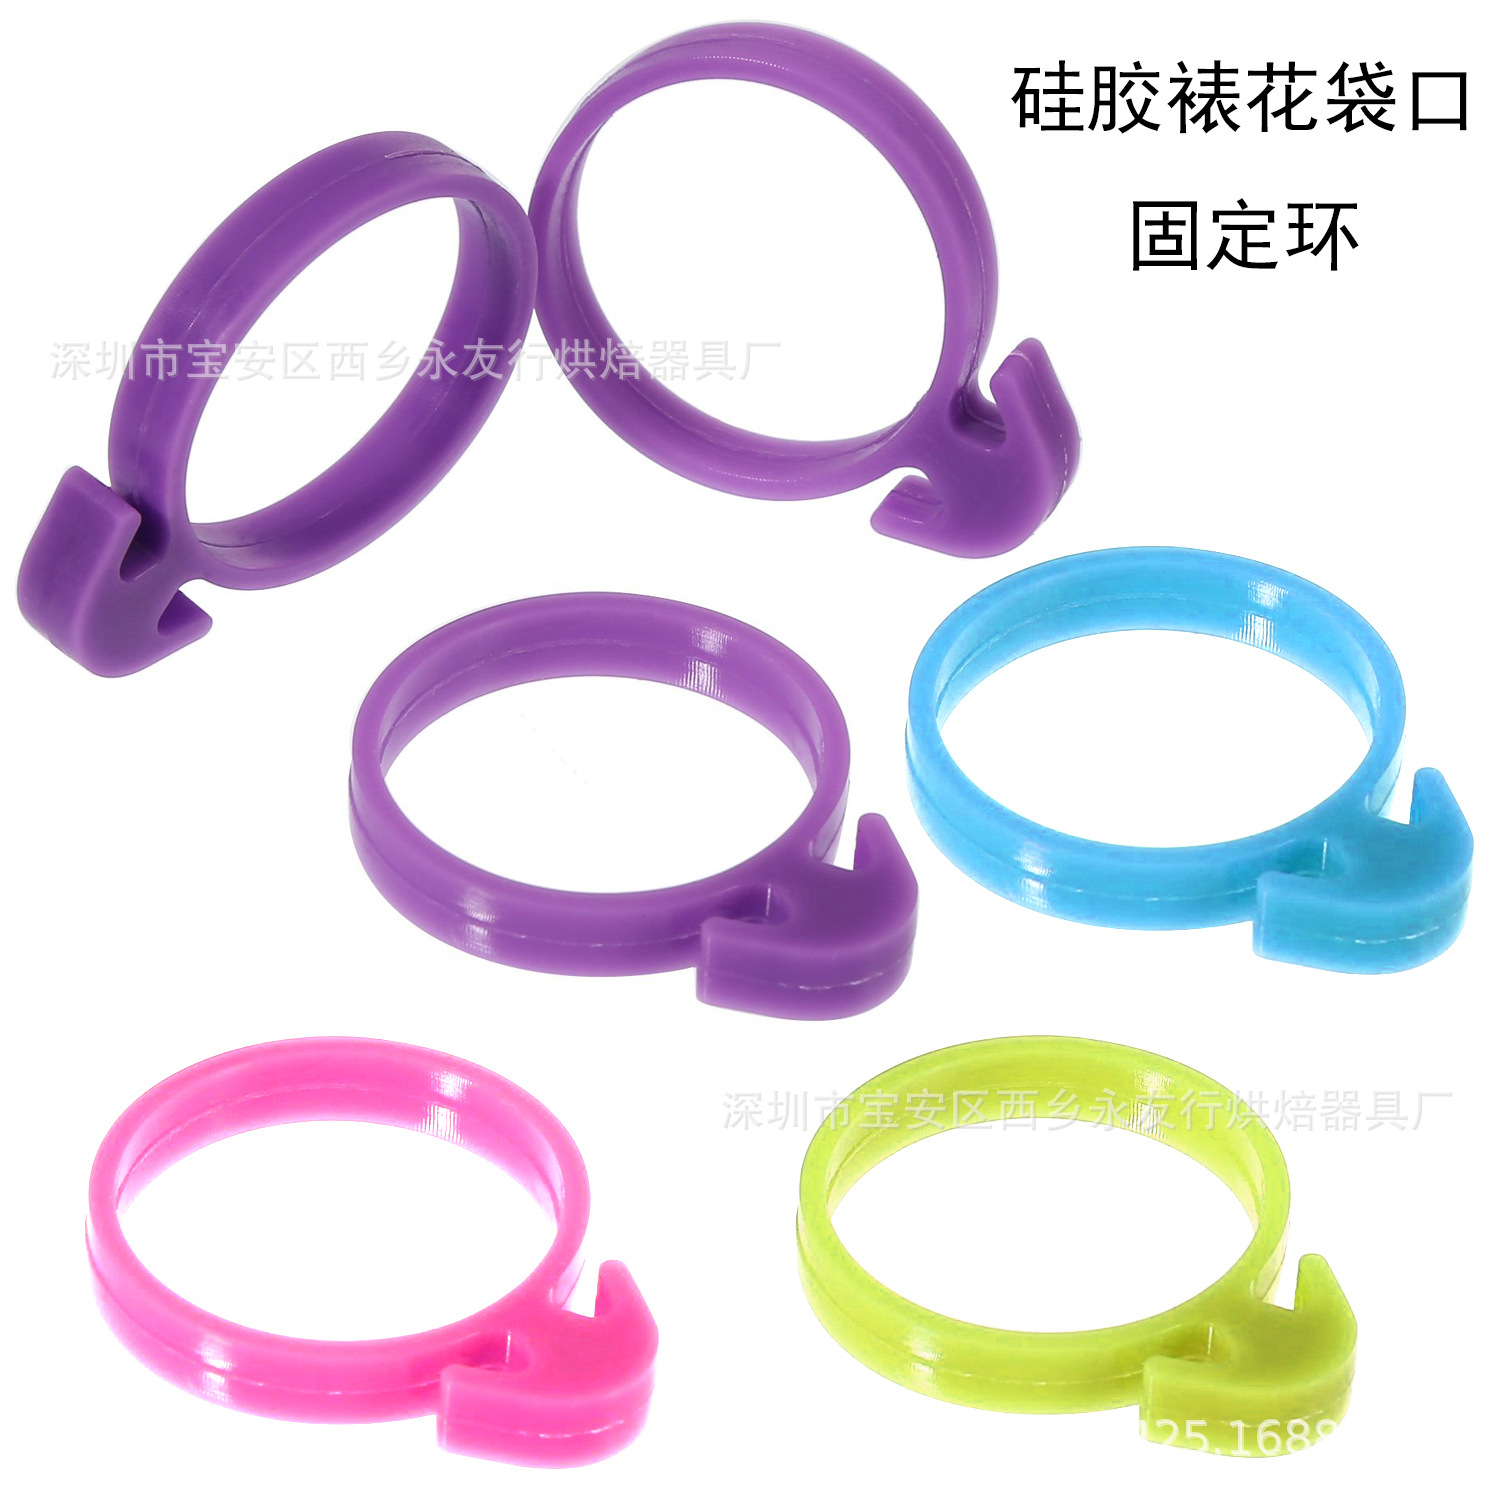 Multi-color Silica Gel Fixed Ring Cream Pastry Bag Fixed Ring Assistant Ring Decorating Pouch Tying Silica Gel Seal Circle Plant